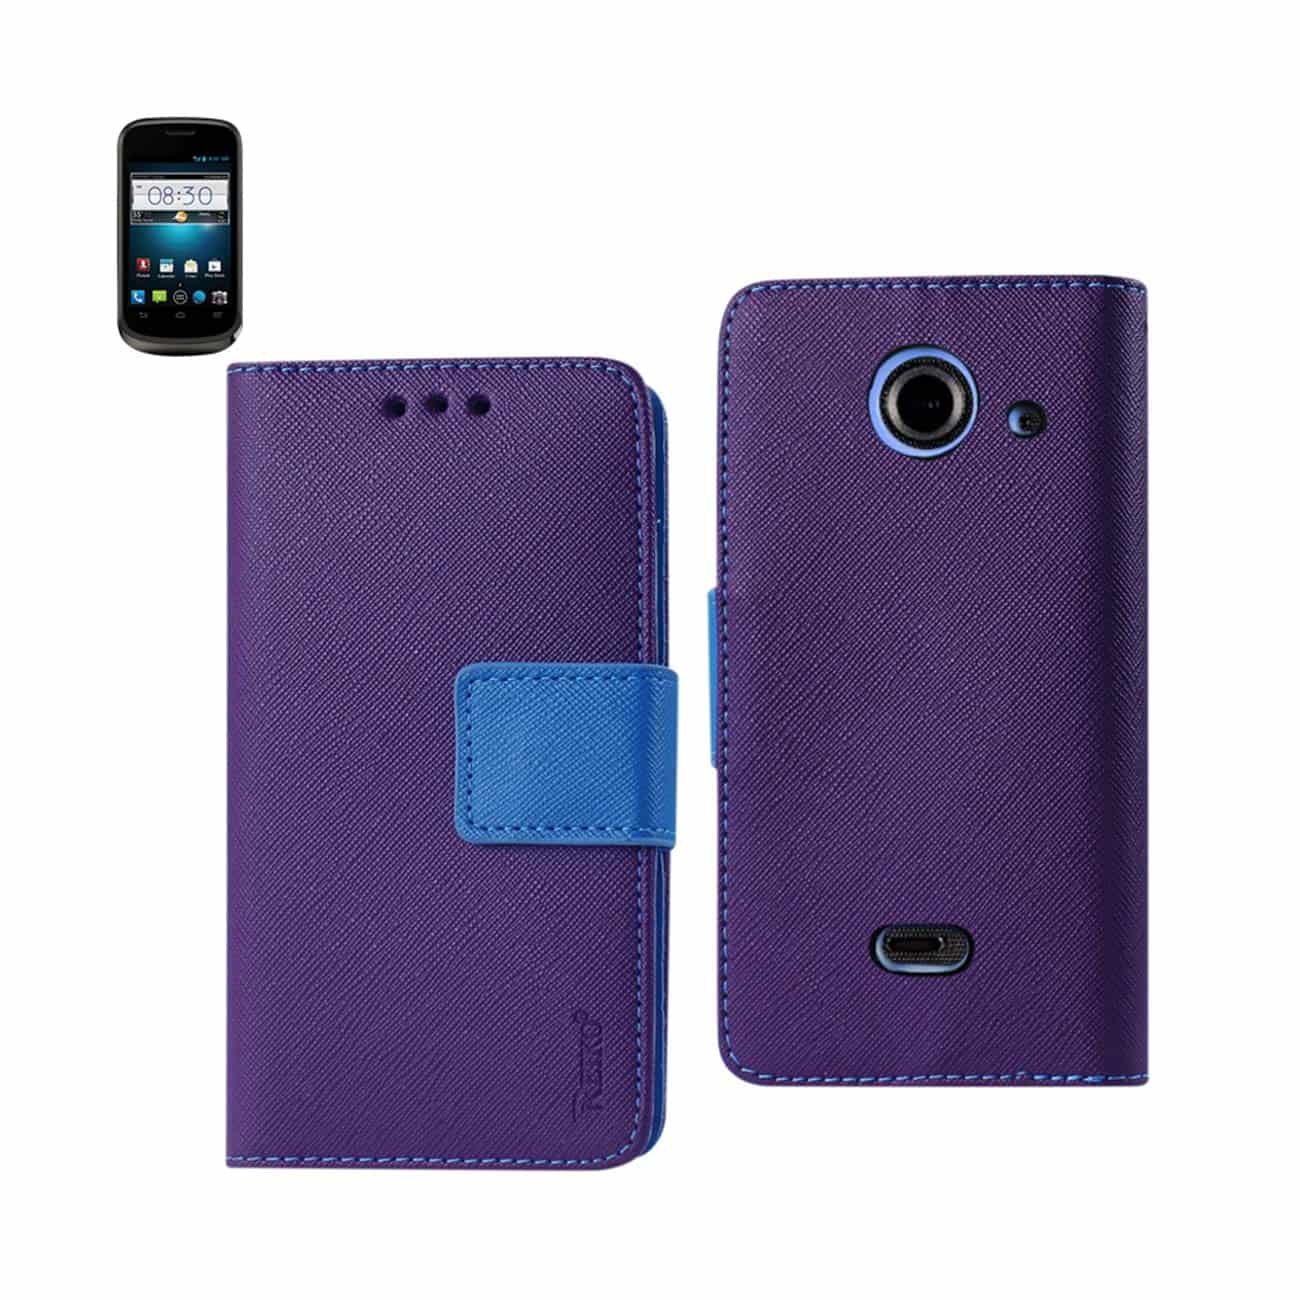 ZTE PRELUDE 2 3-IN-1 WALLET CASE IN PURPLE